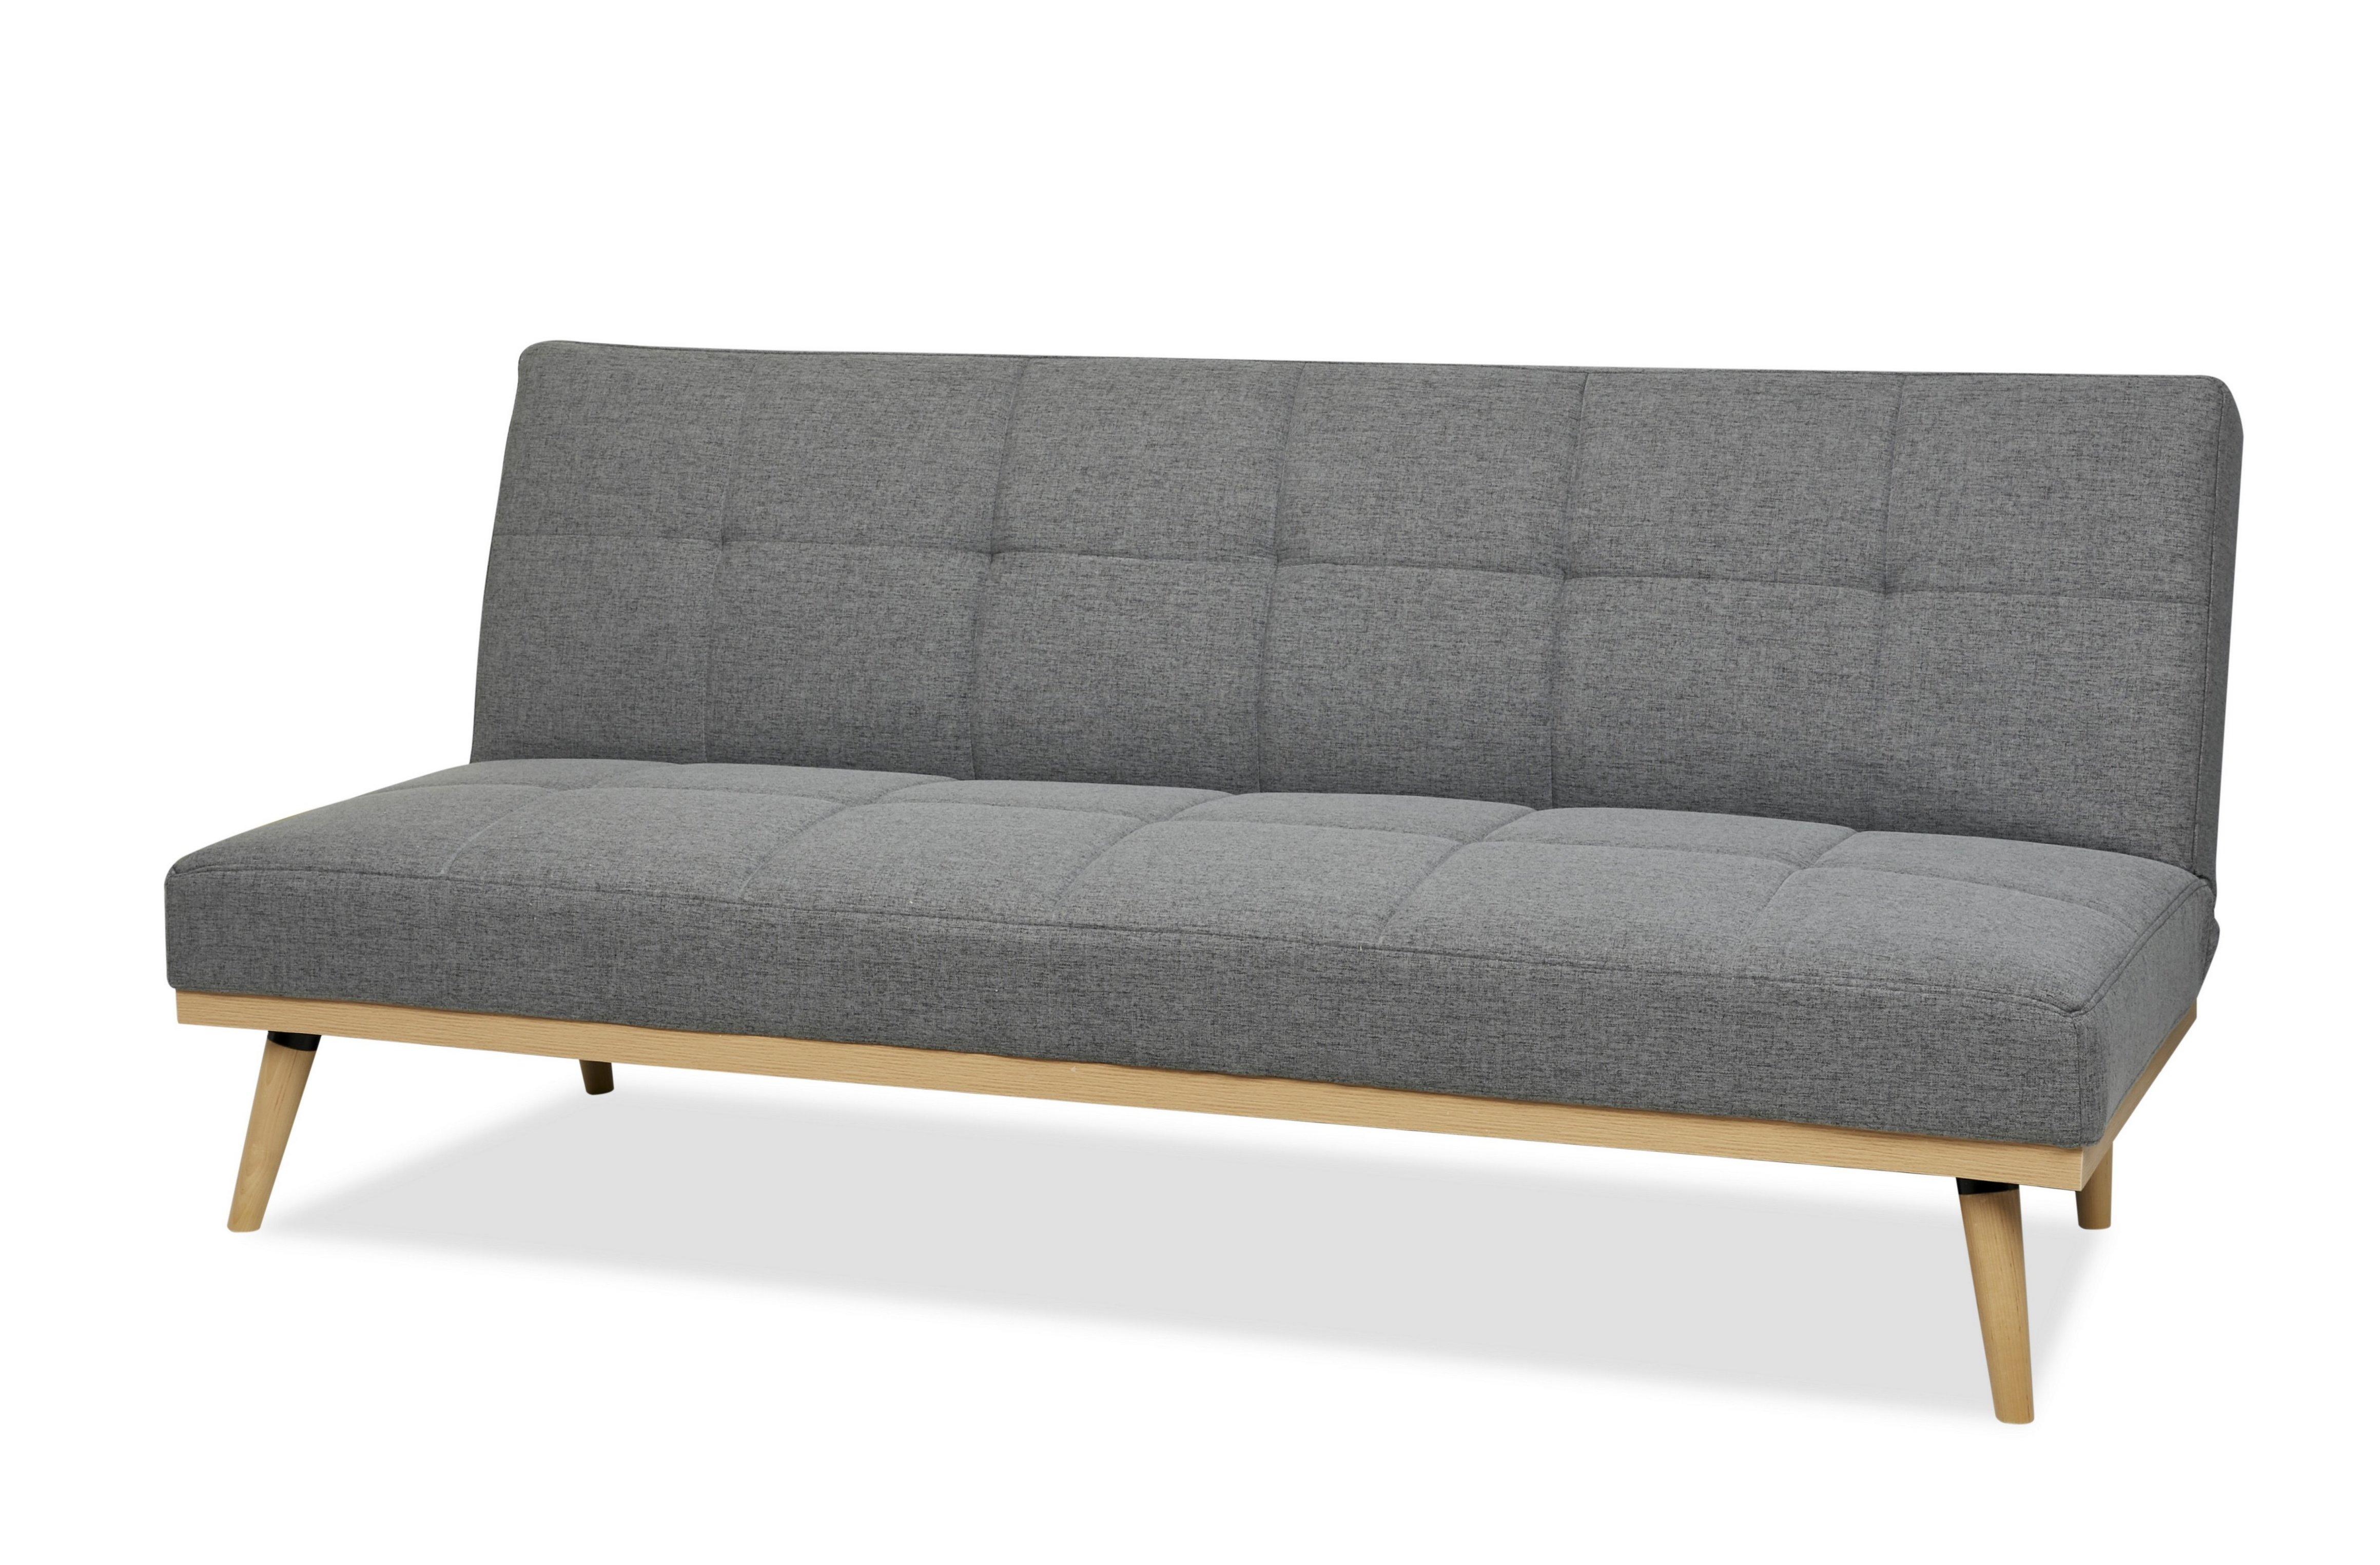 Leader Lifestyle Milo 2 Seater Clic Clac Sofa Bed & Reviews | Traveller Location.uk